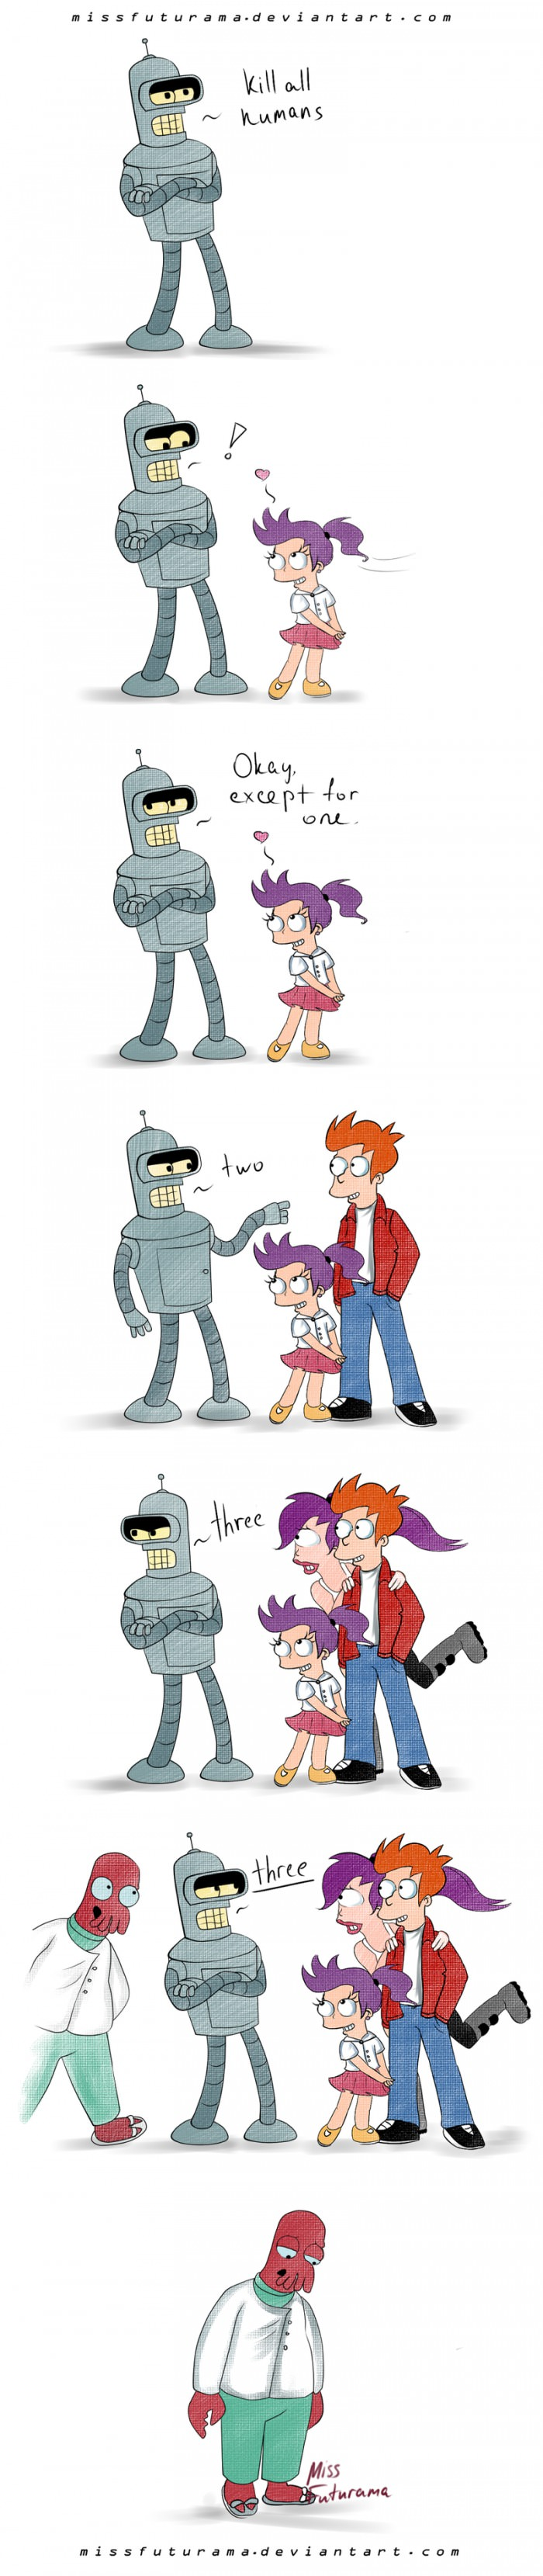 futurama, bender wants to kill all humans, except